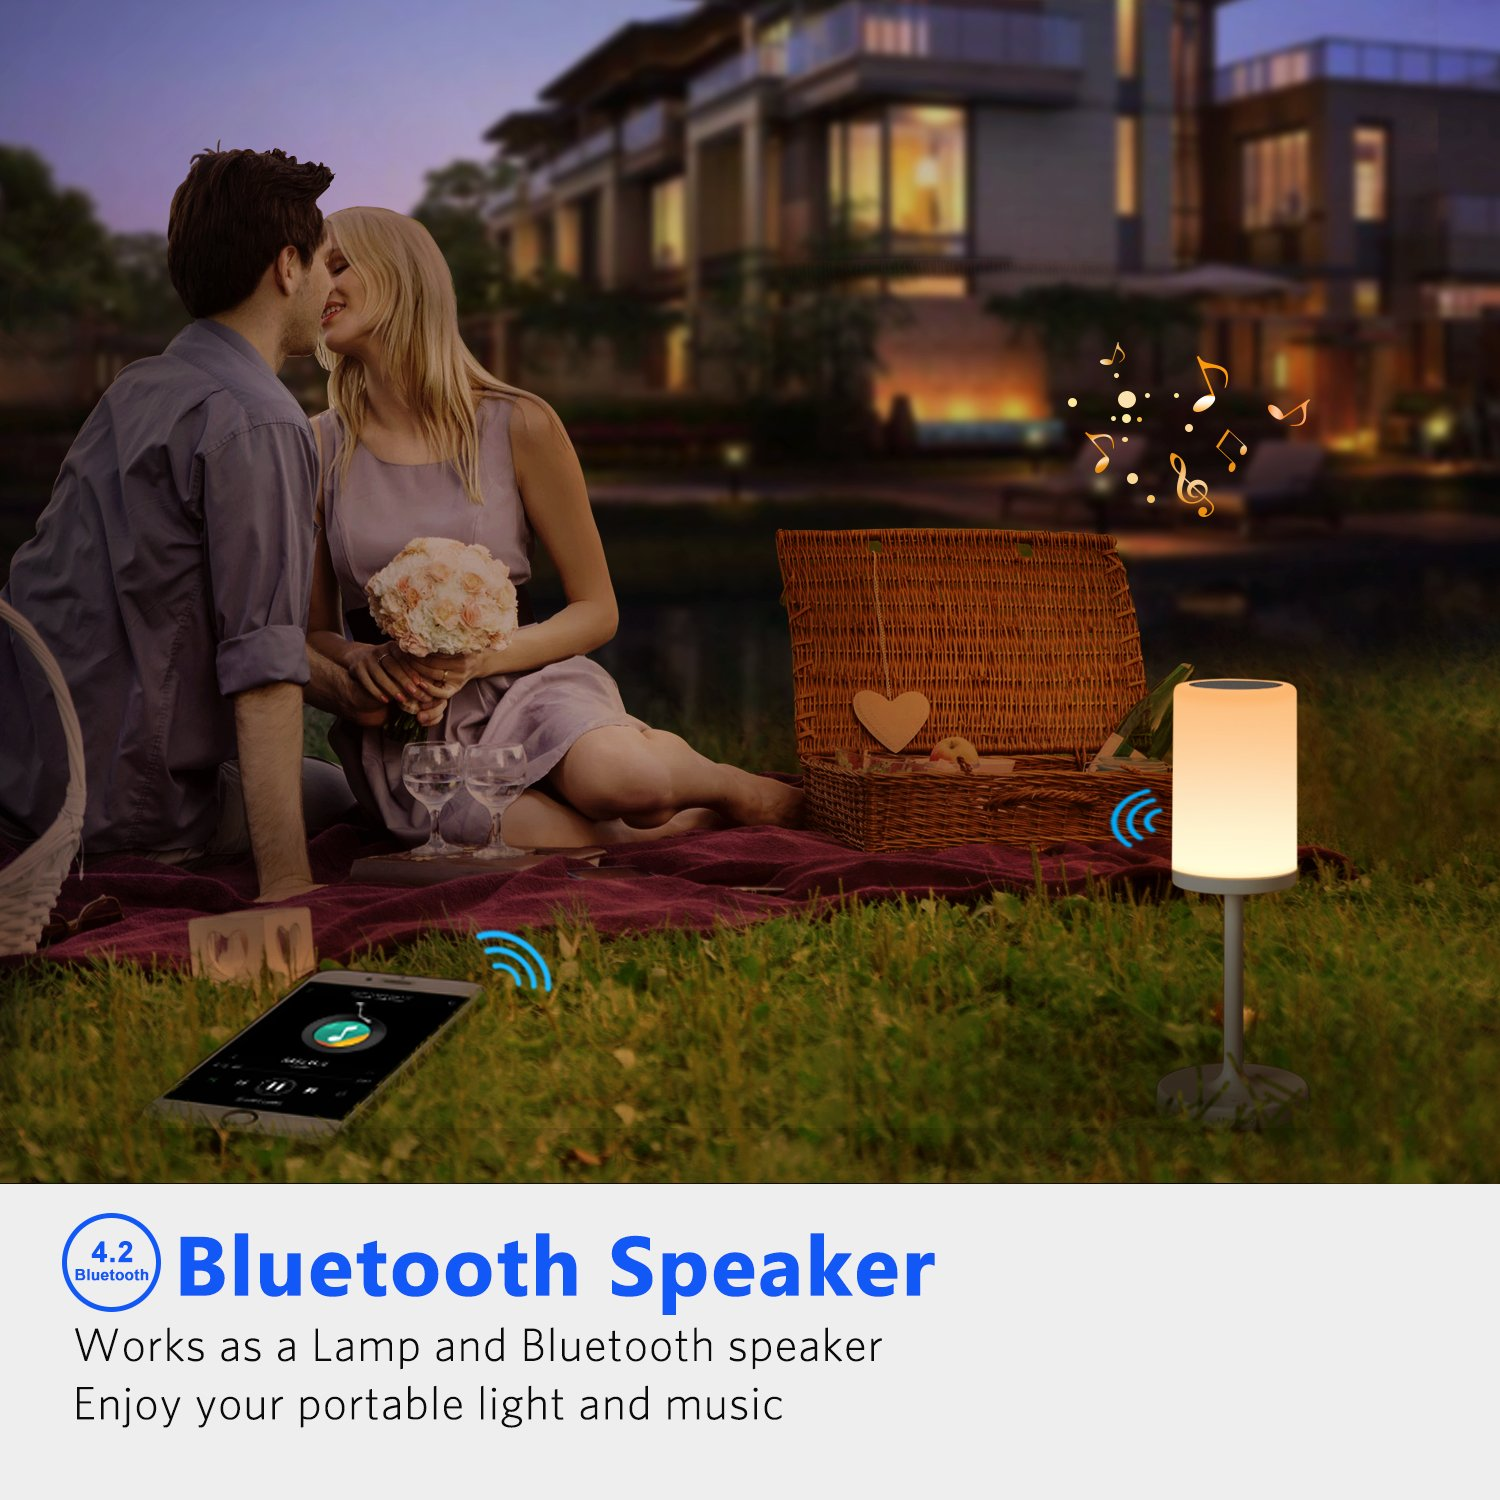 Marrado Bluetooth Speakers + Bedside Lamp, Night Light, Smart Touch Control Table Lamp for Bedroom Living Room, Portable Rechargeable LED Desk Lamp, Dimmable Warm White & Color Changing by Marrado (Image #4)